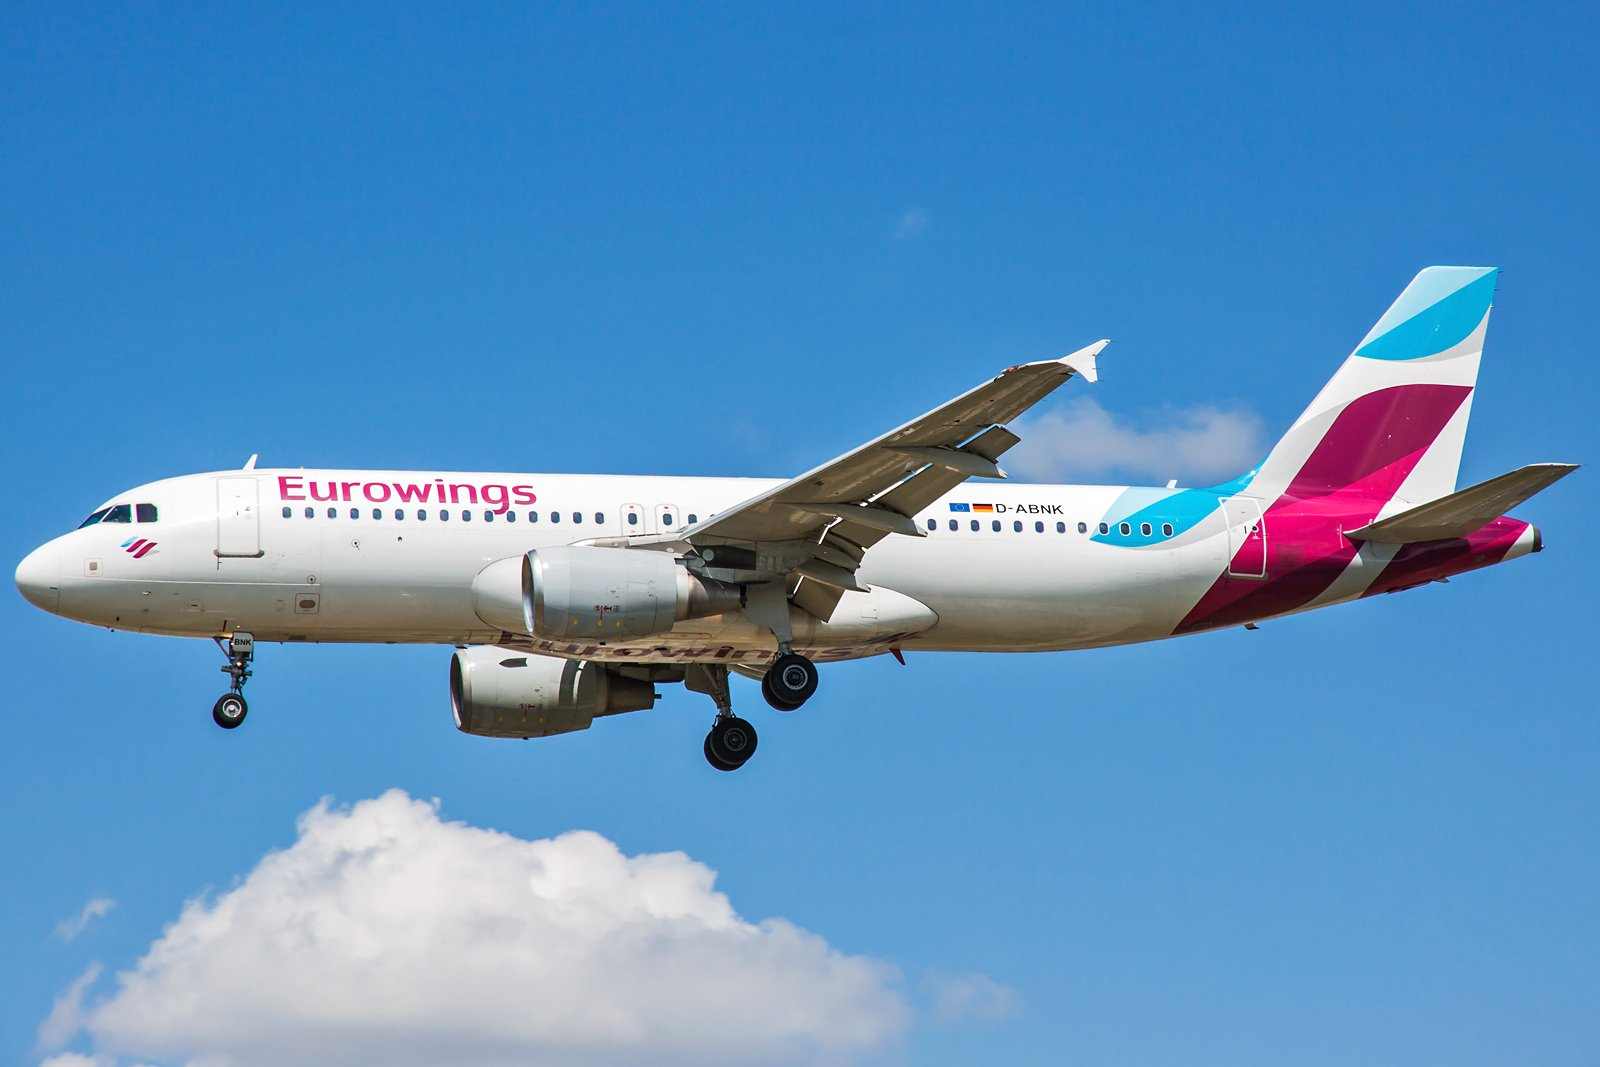 Eurowings Airbus A320-214 D-ABNK